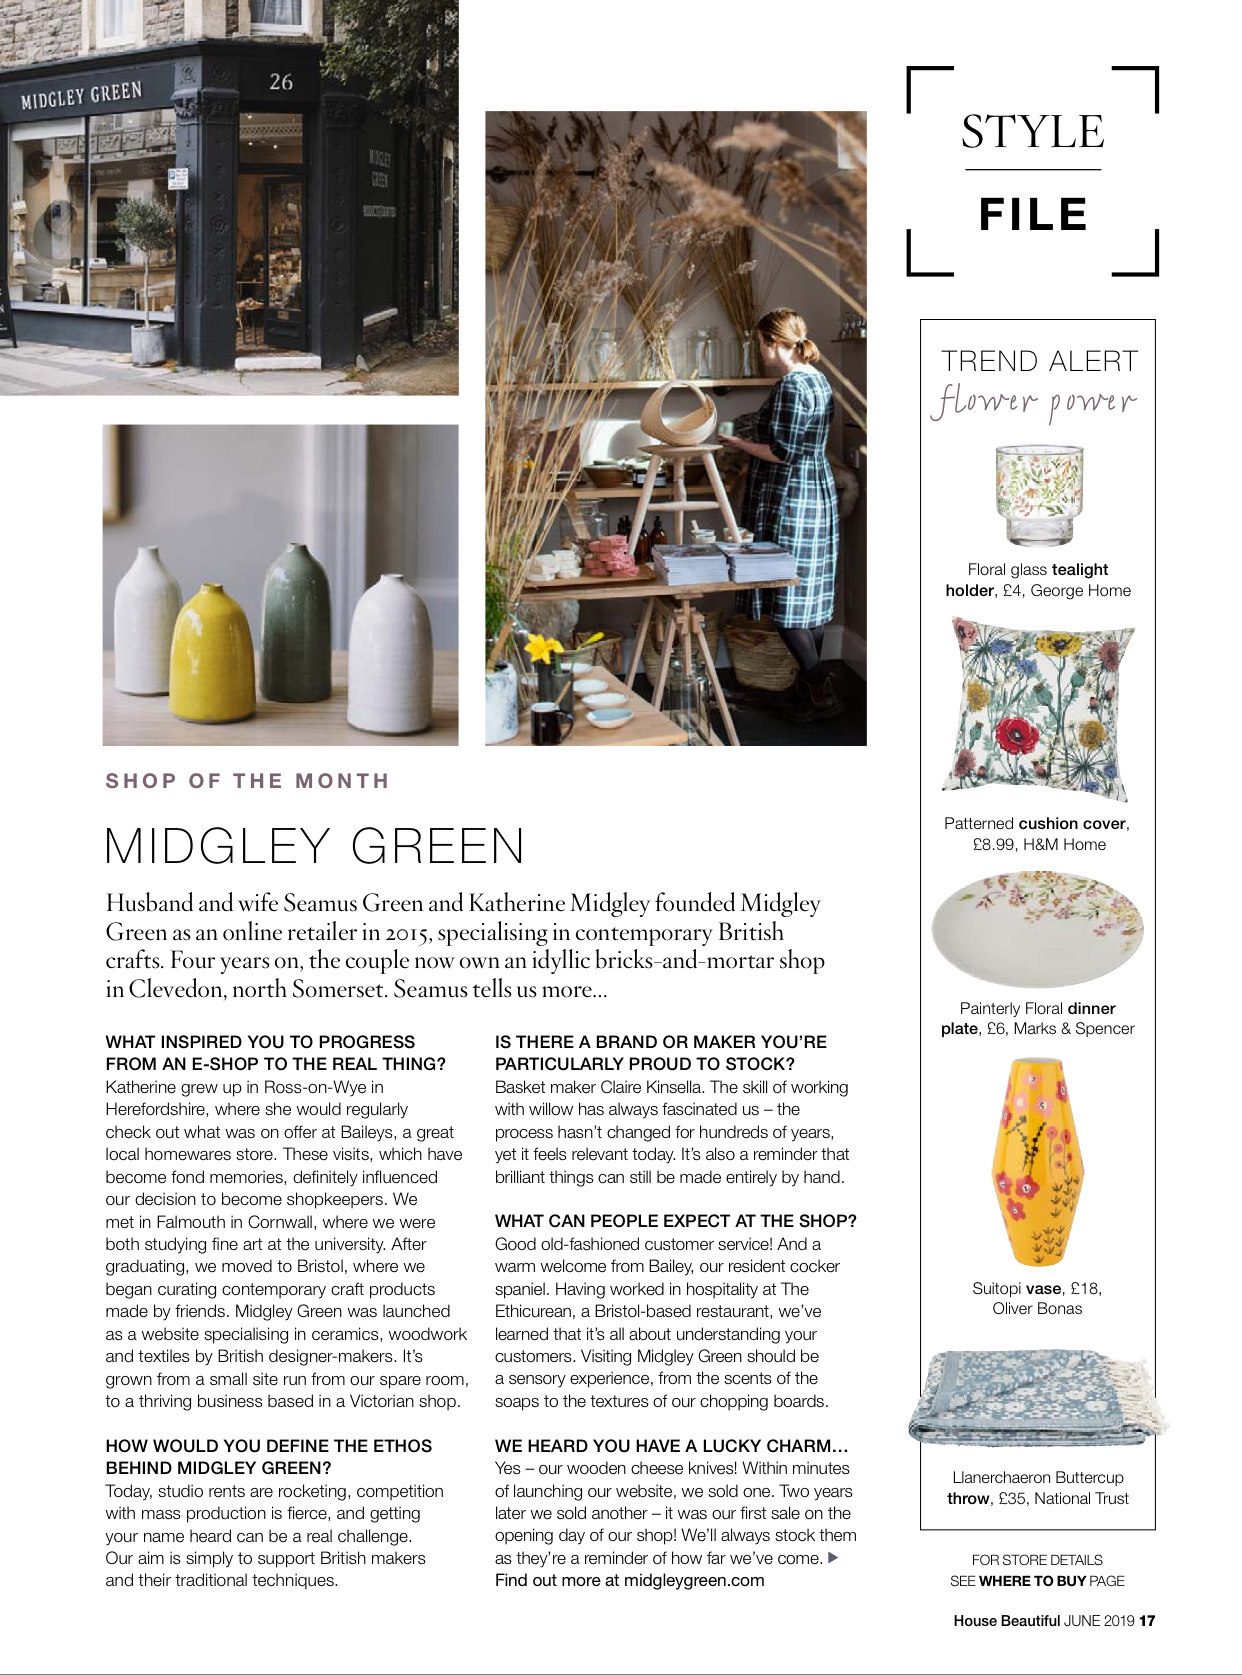 Lucy Rutter bottles at Midgley Green, House Beautiful magazine, June 2019